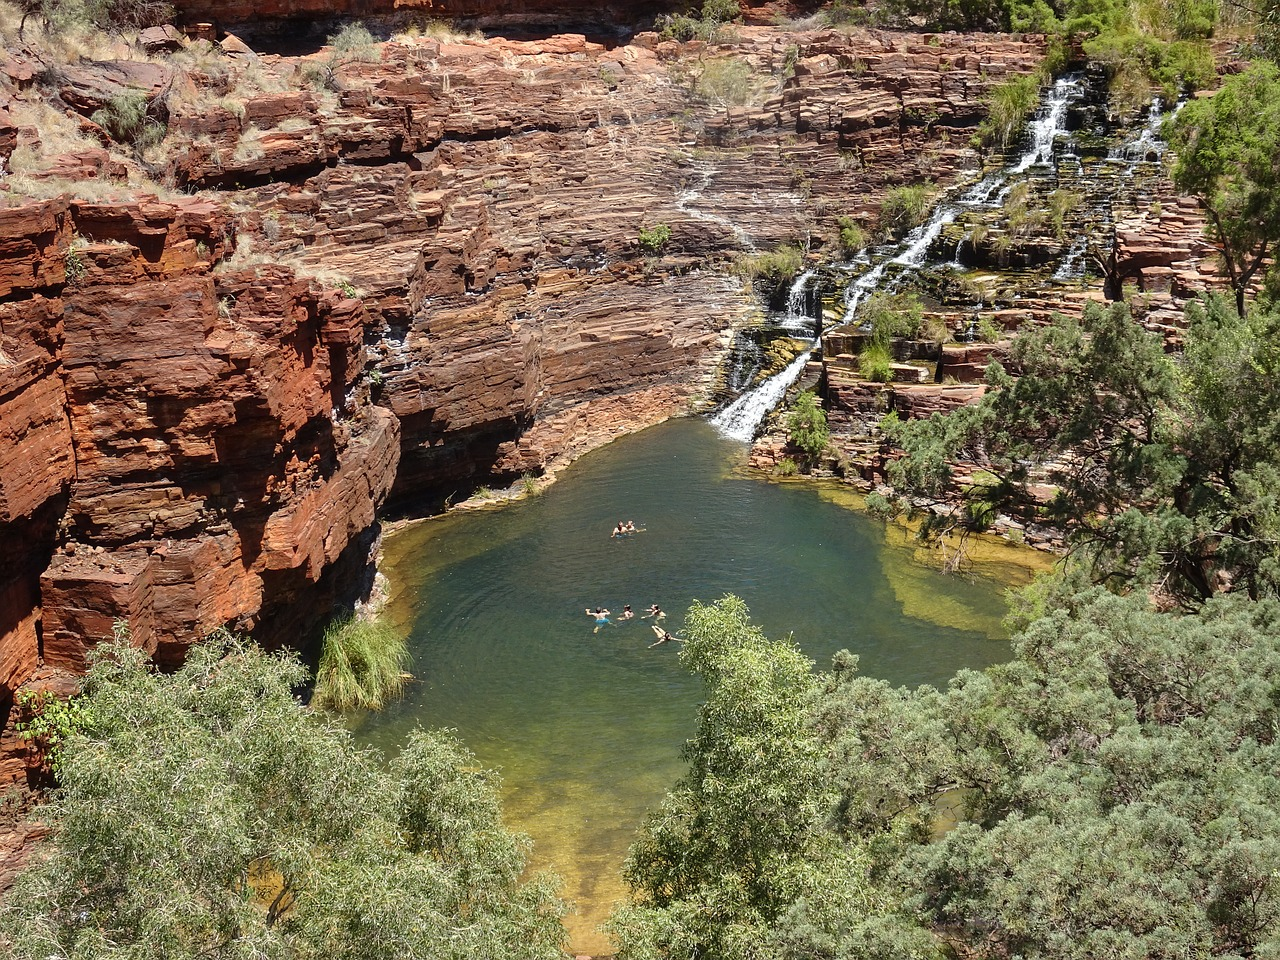 Karijini National Park is a must-see  if you travel Western Australia. Discover more things to do in Australia's West Coast from this article. #australia #westernaustralia #travelaustralia #australiatravel #australiaattractions